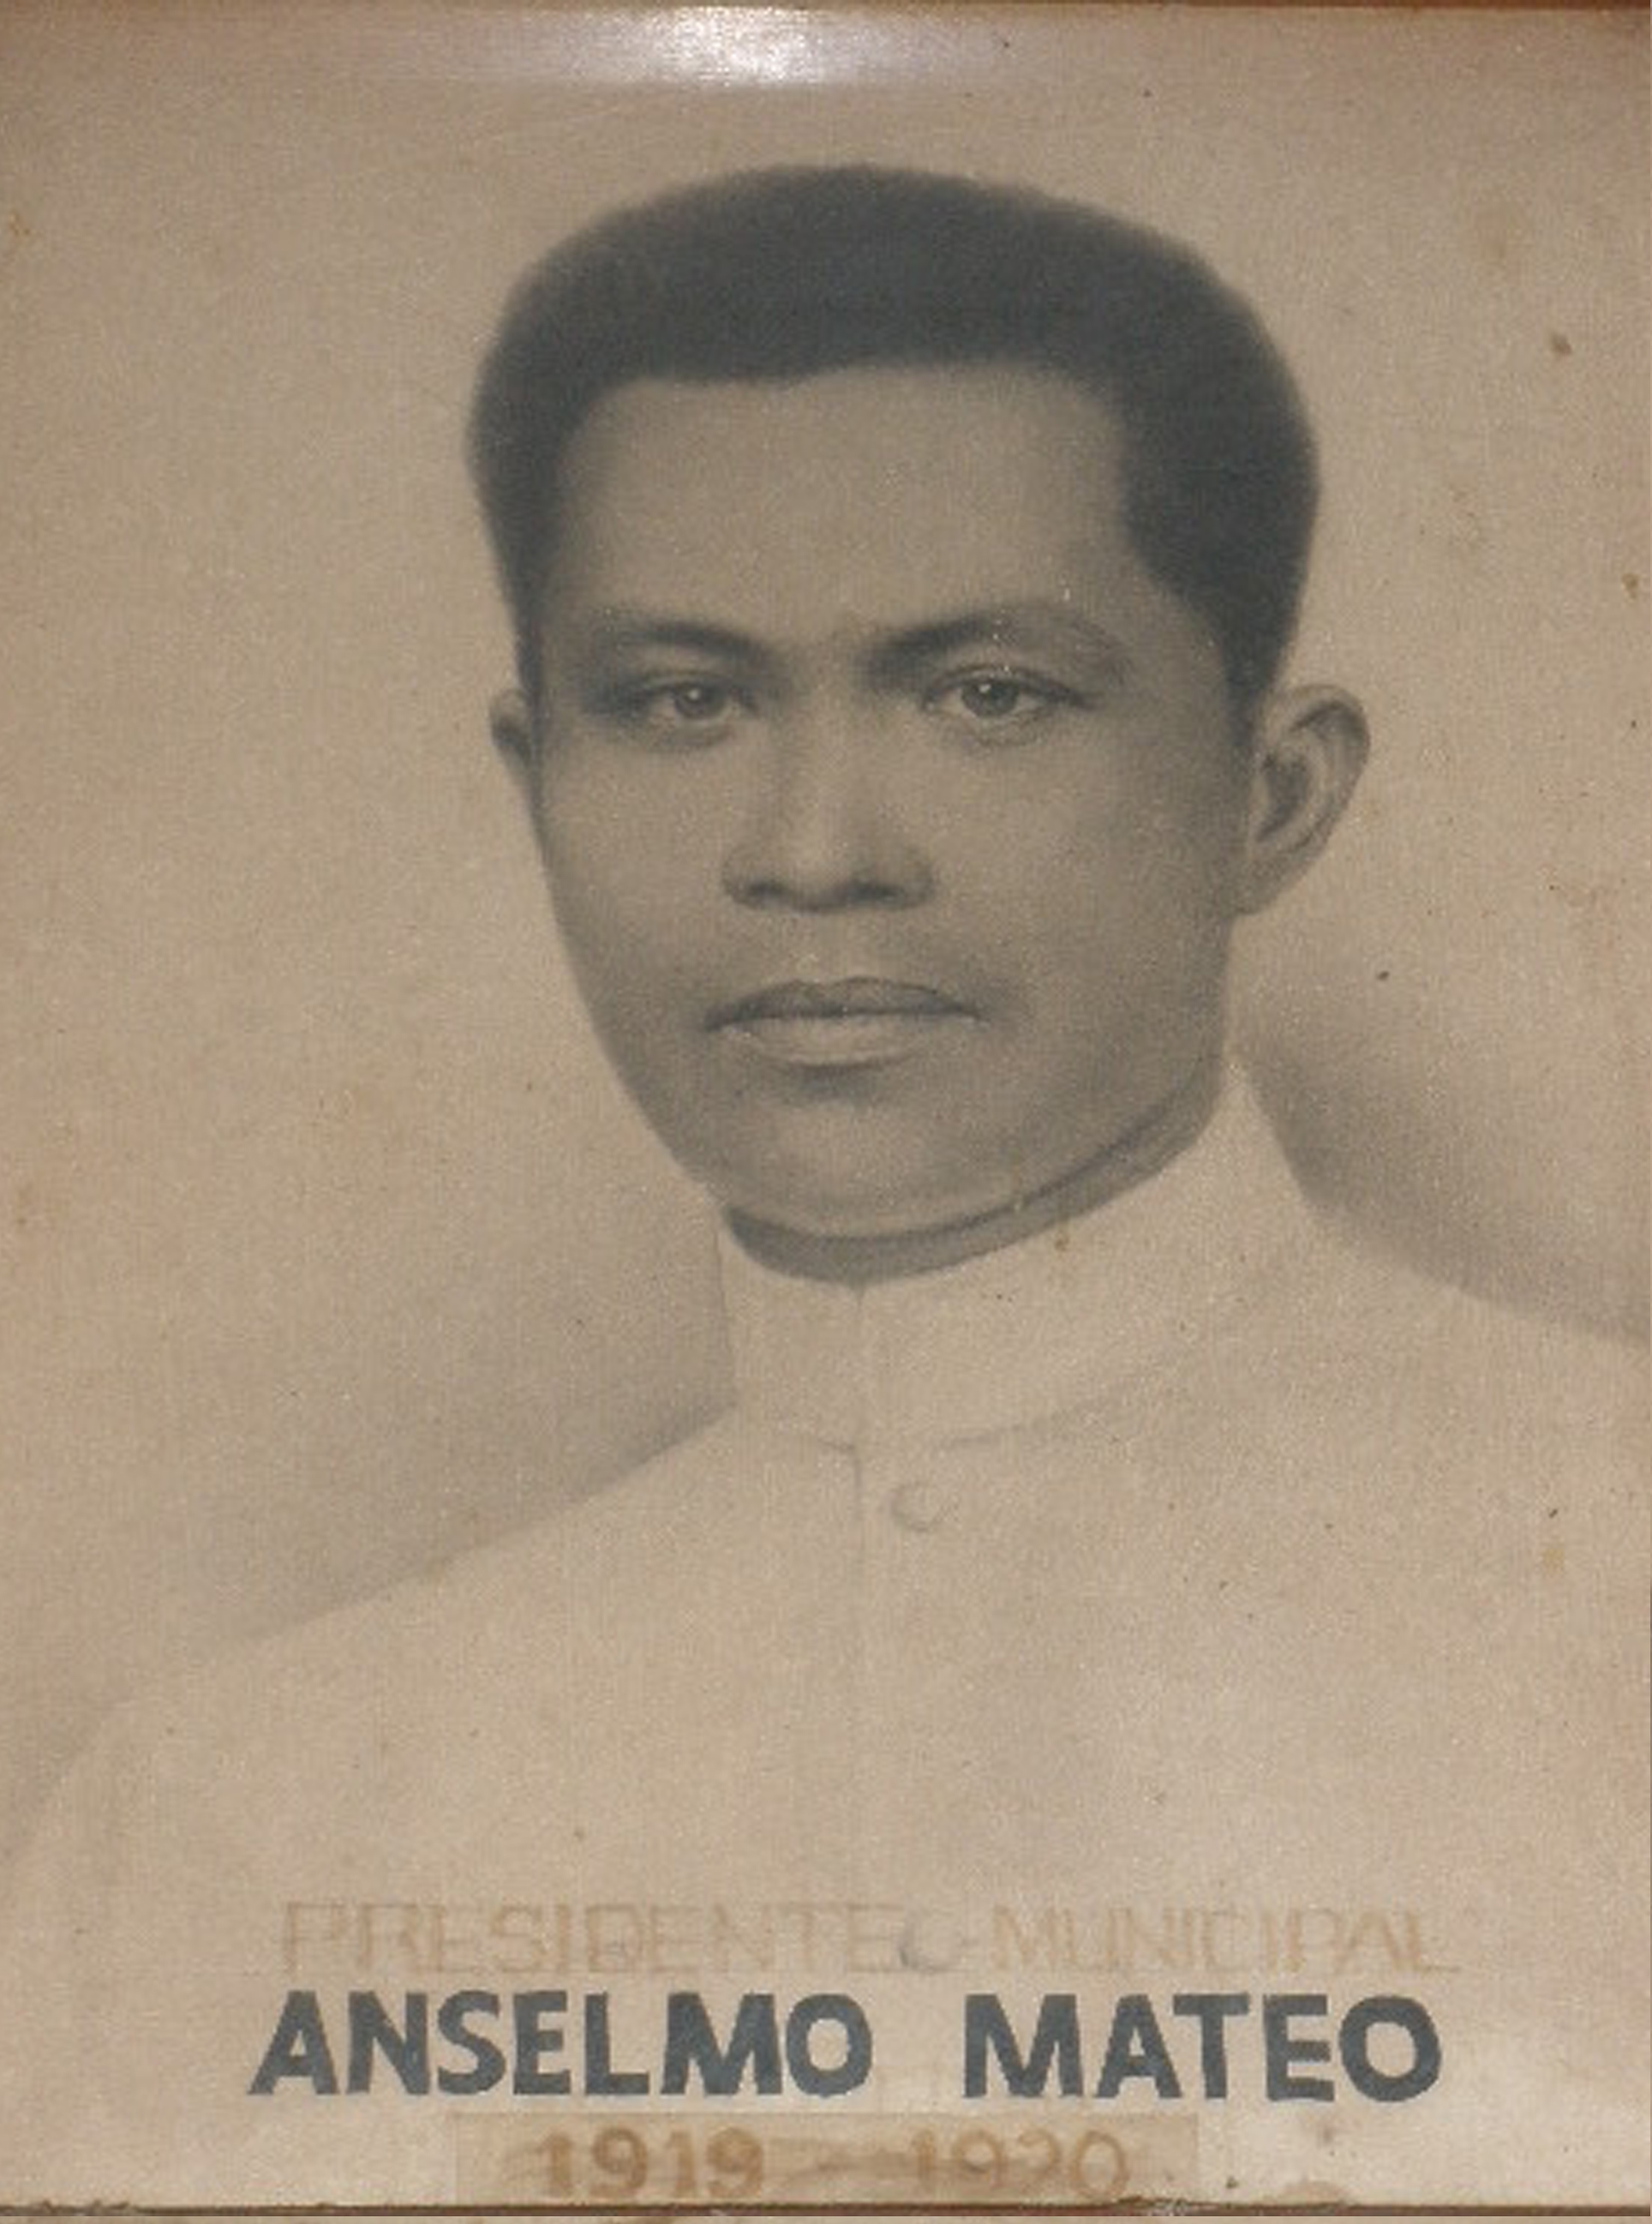 Mayor Anselmo Mateo (1919-1920)